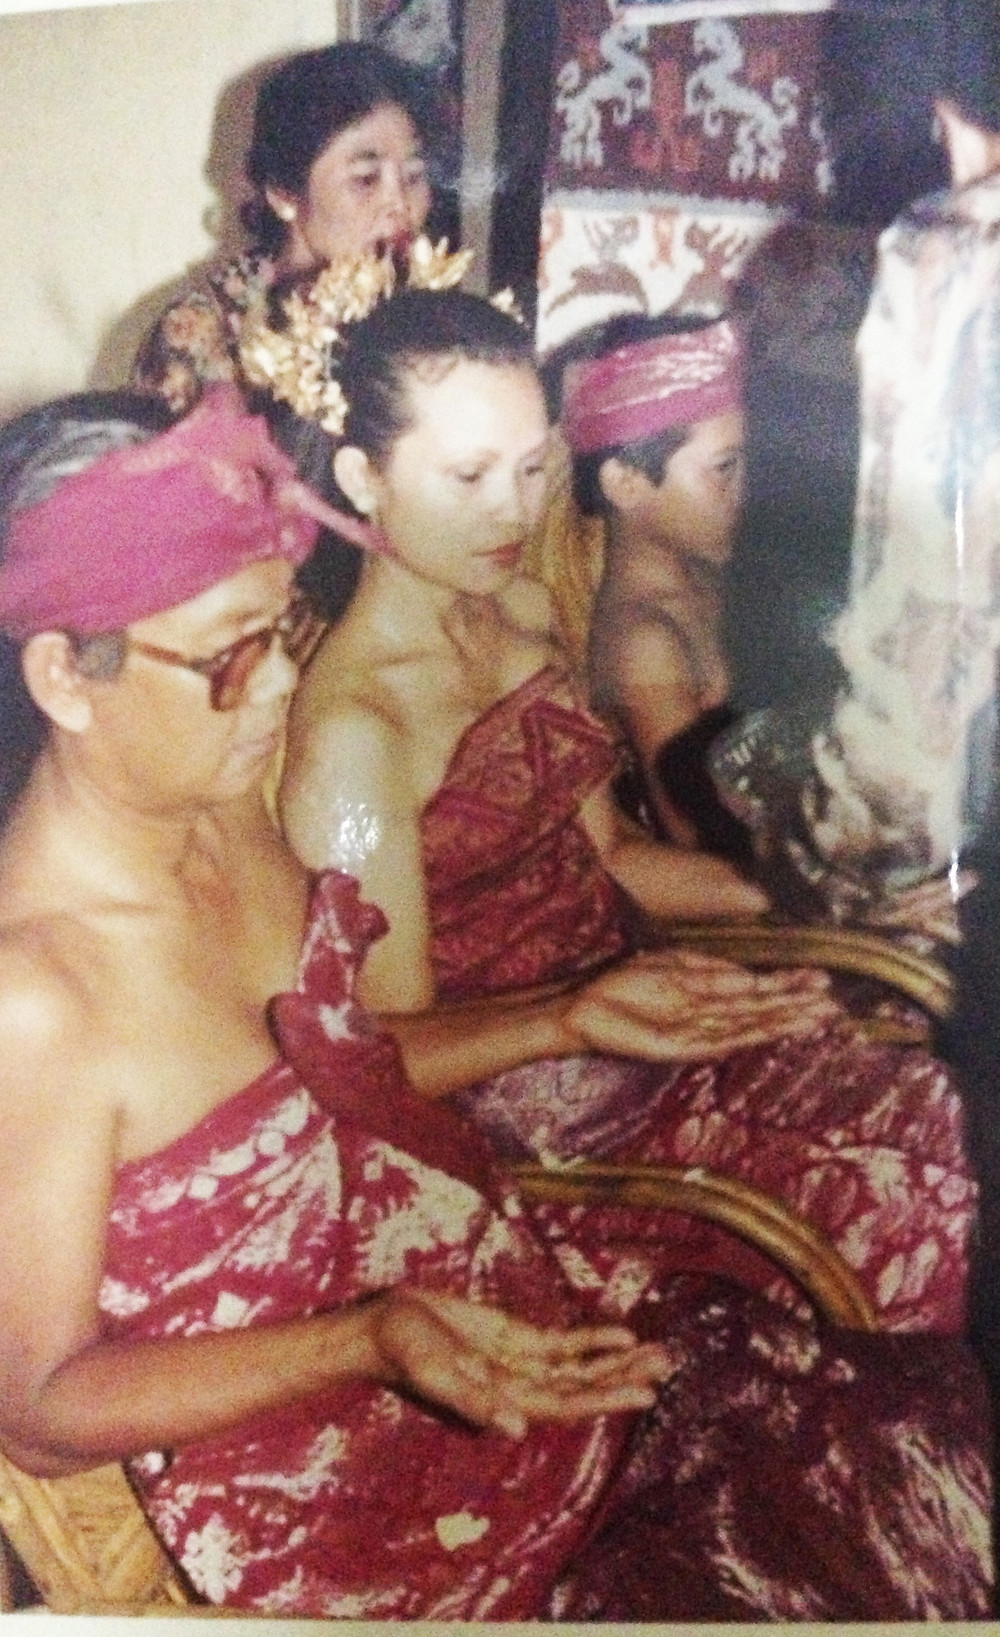 Sukanta's wife Endah as a professional dancer (above) With Sukanta at their wedding (below)